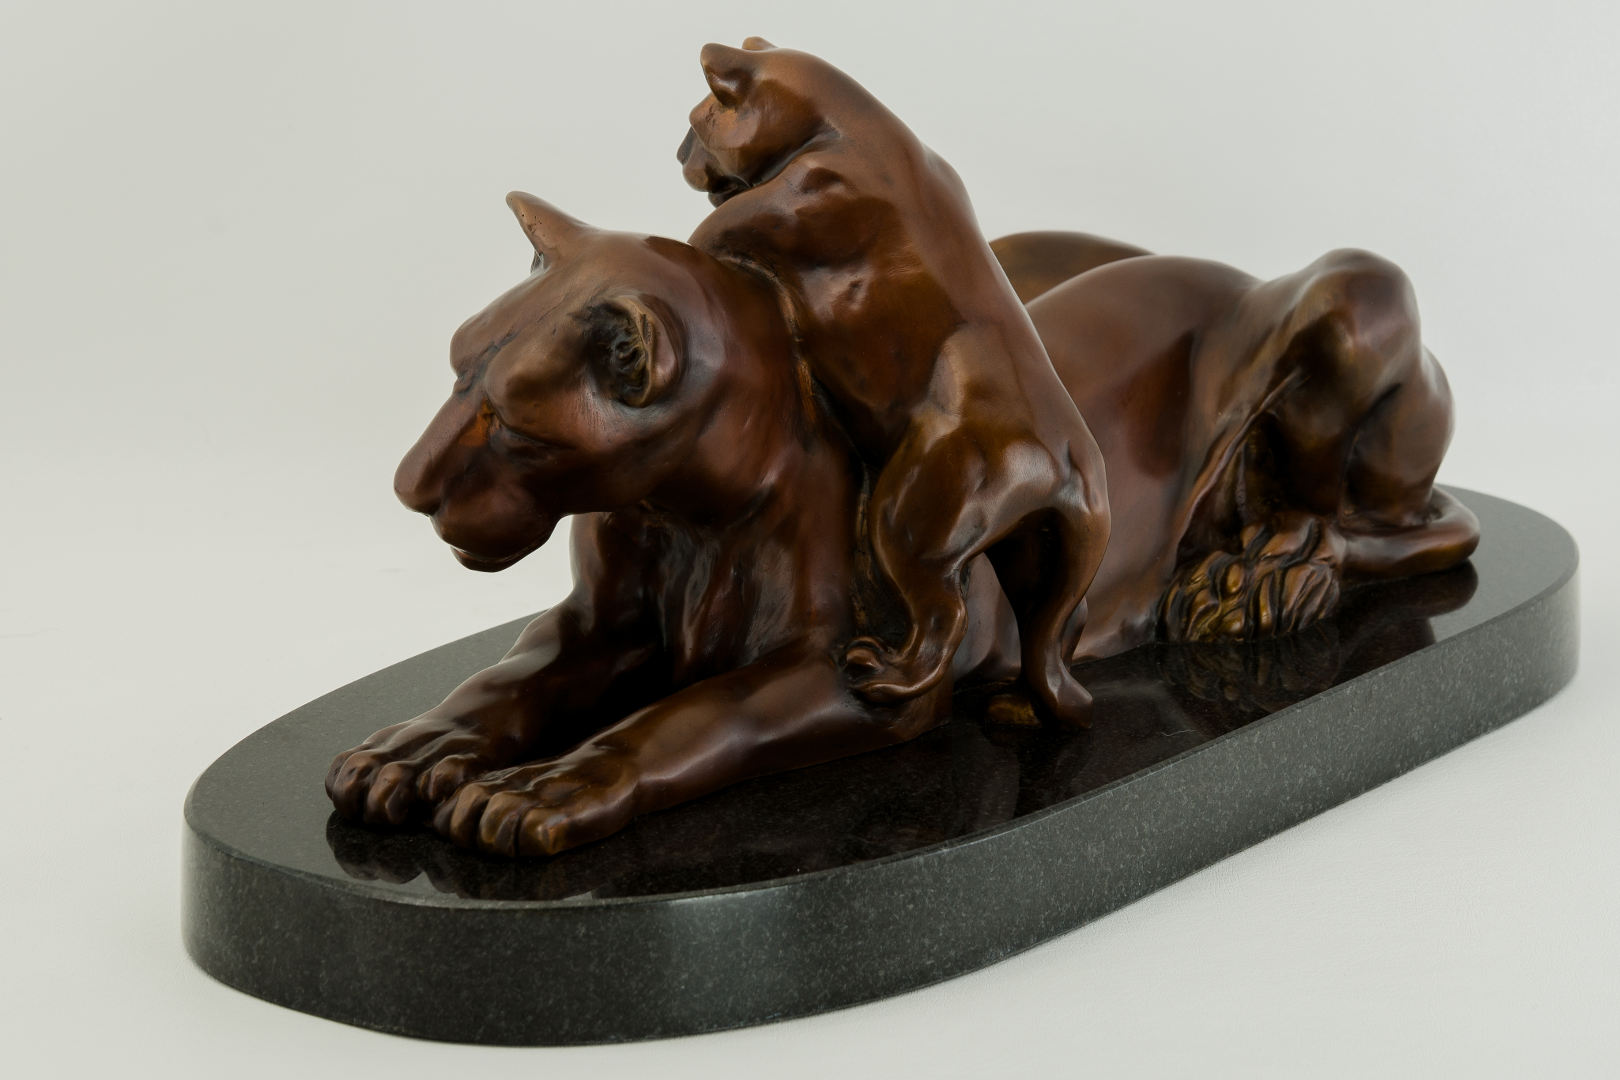 Lioness_and_Cub_bronze_sculpture_by_Terrence_Robertson-Fall-9.jpg